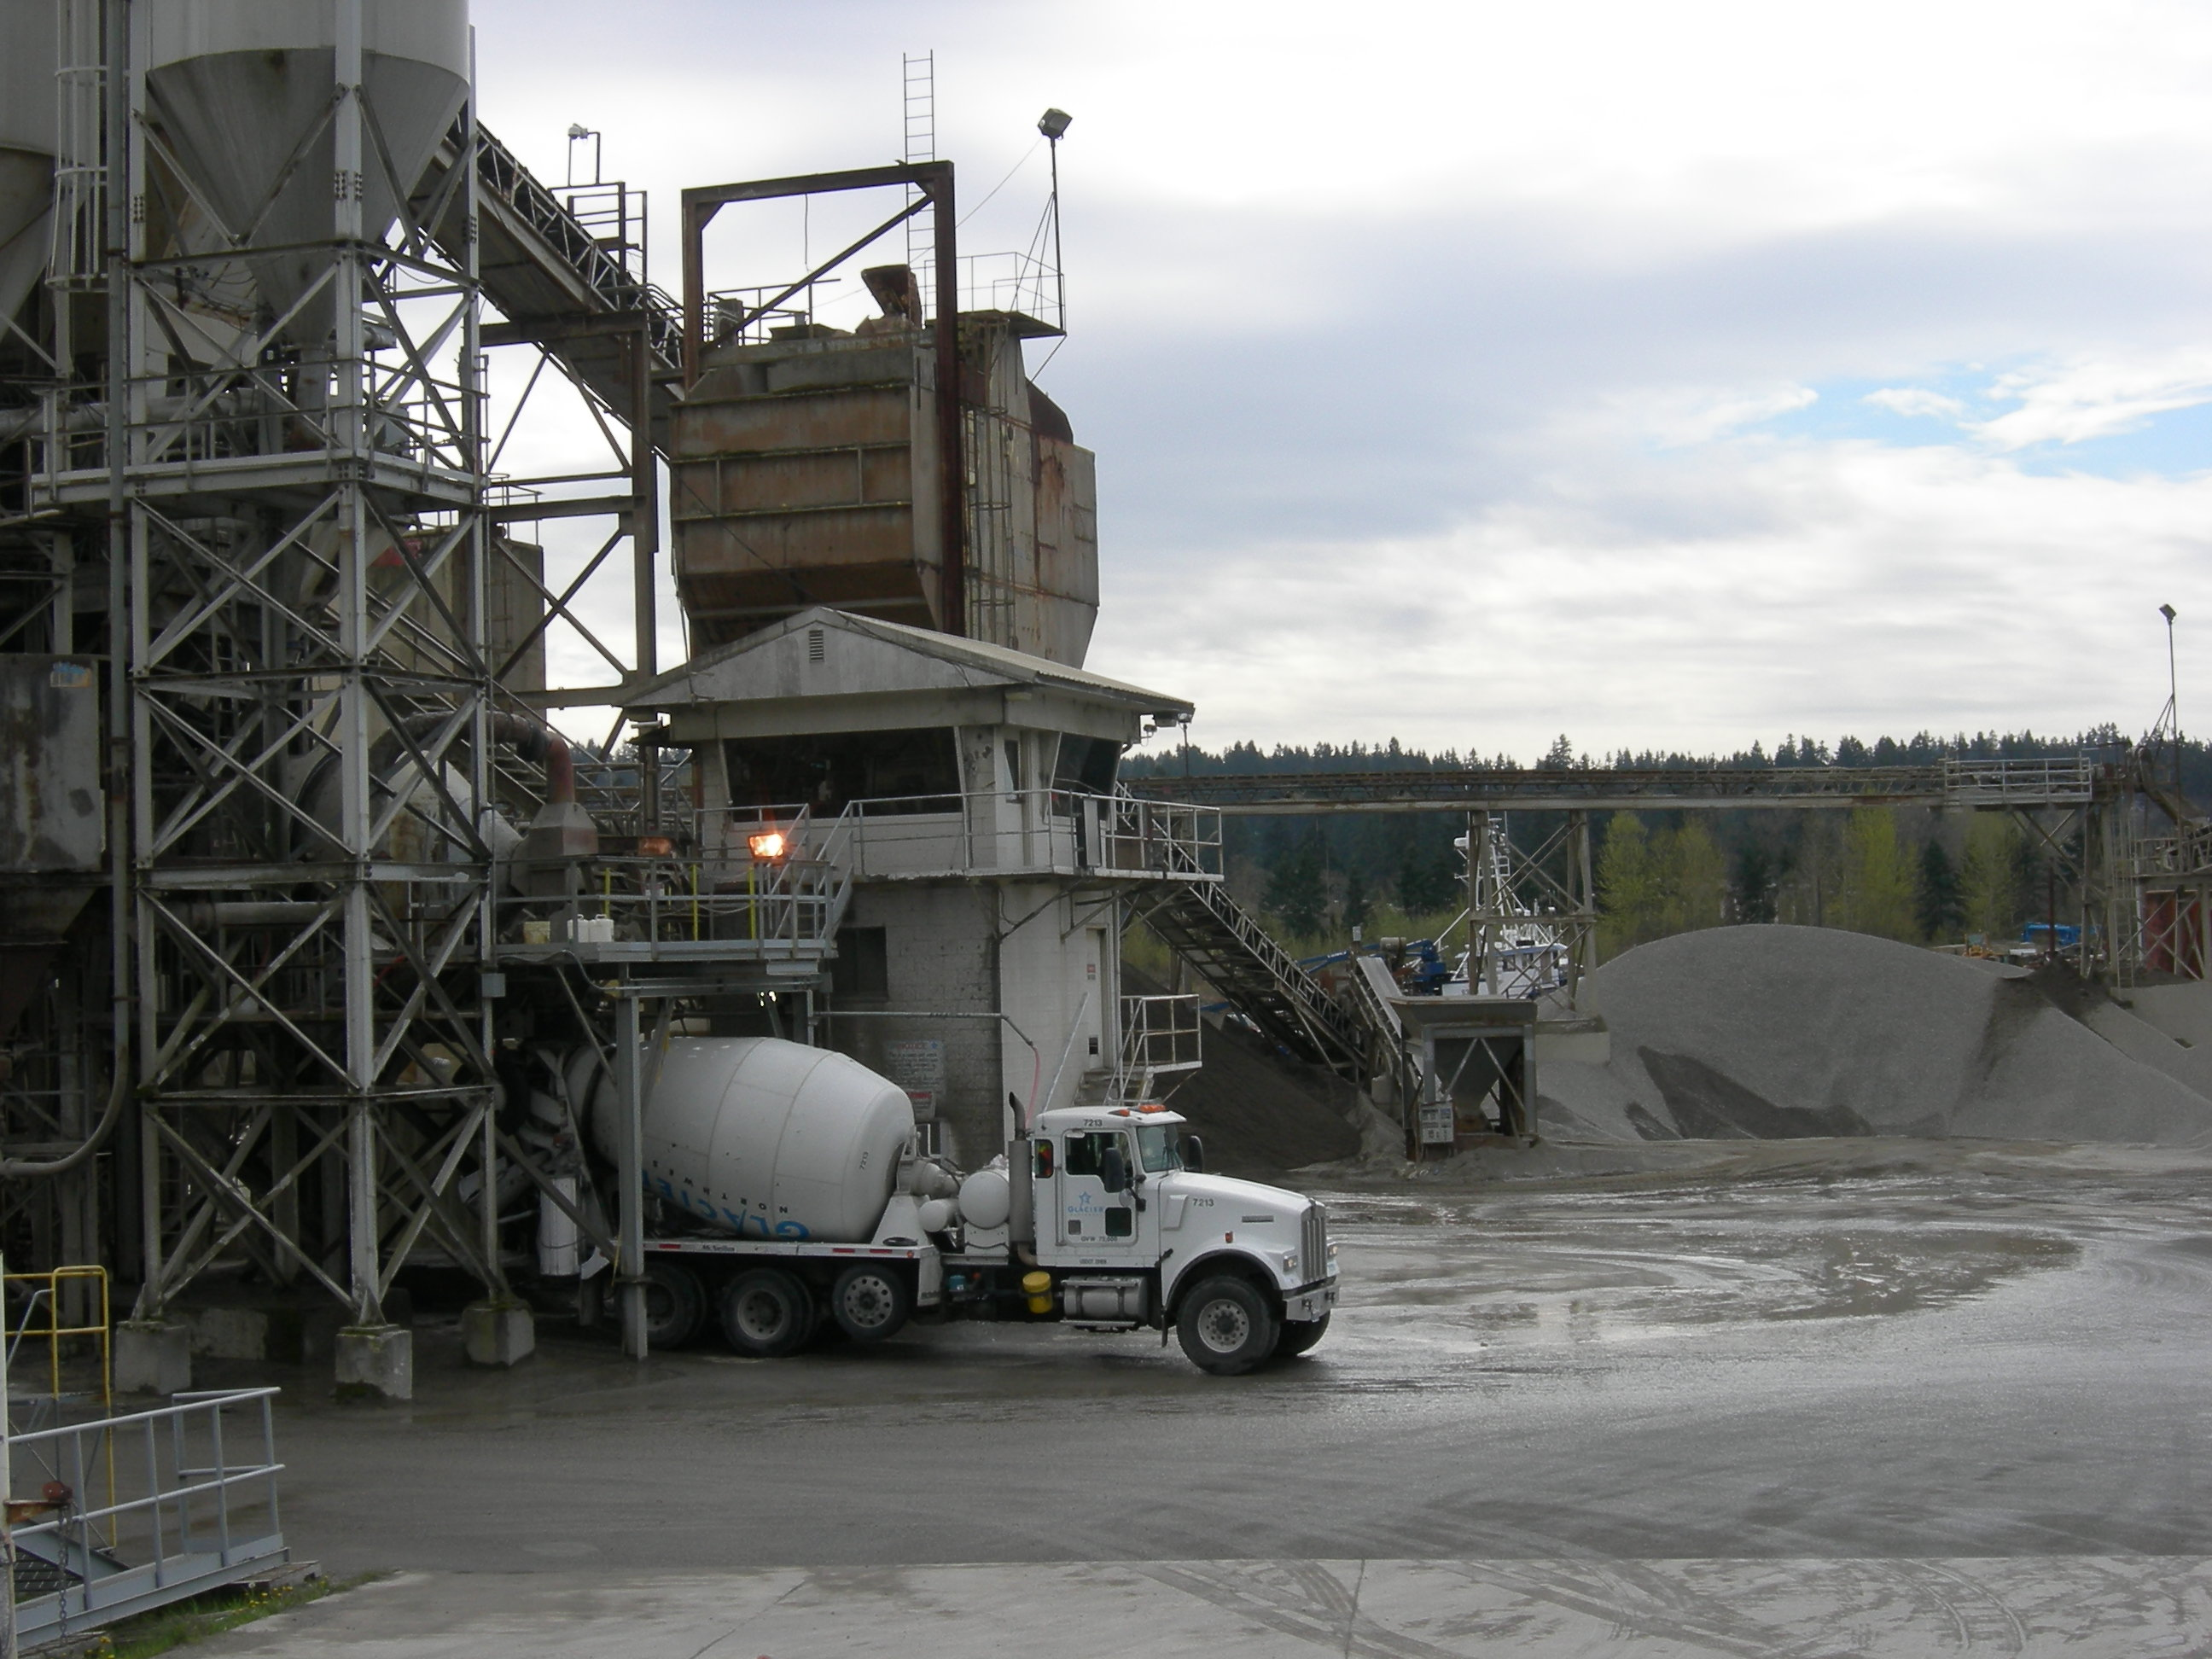 Avanceon's expertise instrumental in optimizing kiln operations, reducing process variability and saving big on fuel cost for a major cement manufacturer